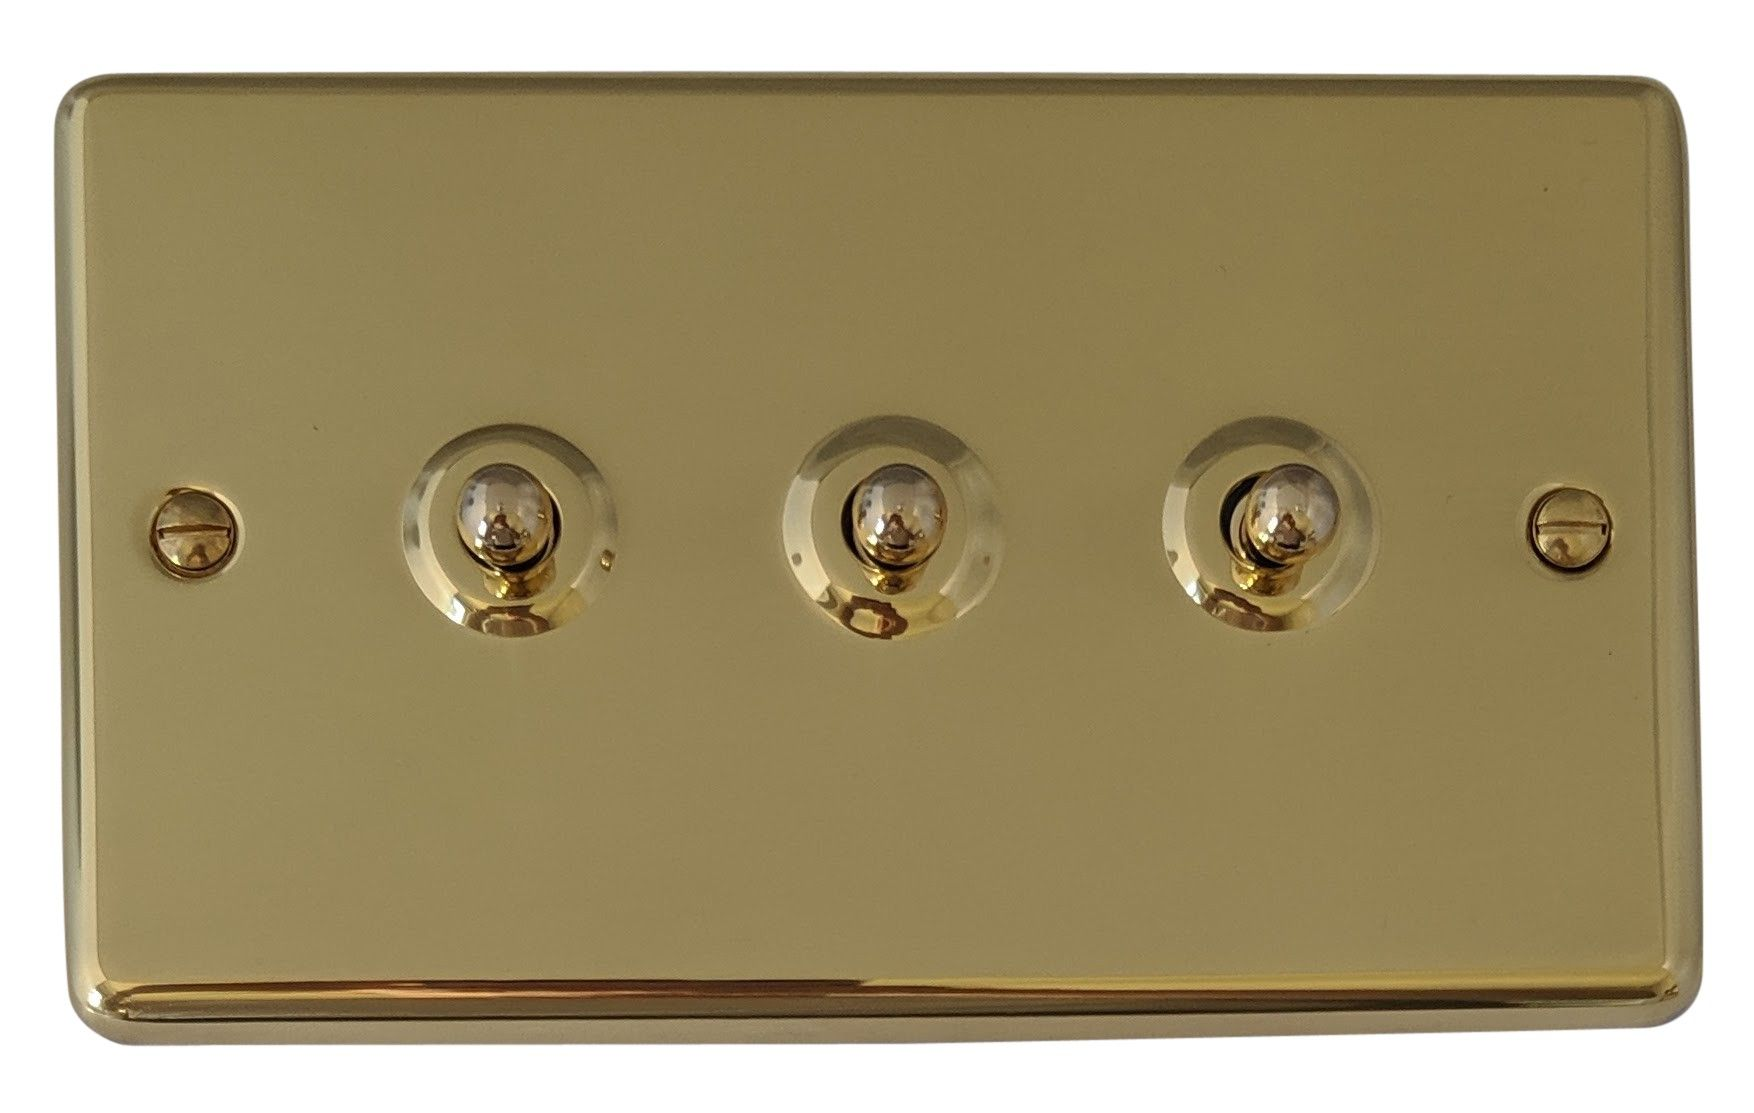 G&H CB283 Standard Plate Polished Brass 3 Gang 1 or 2 Way Toggle Light Switch